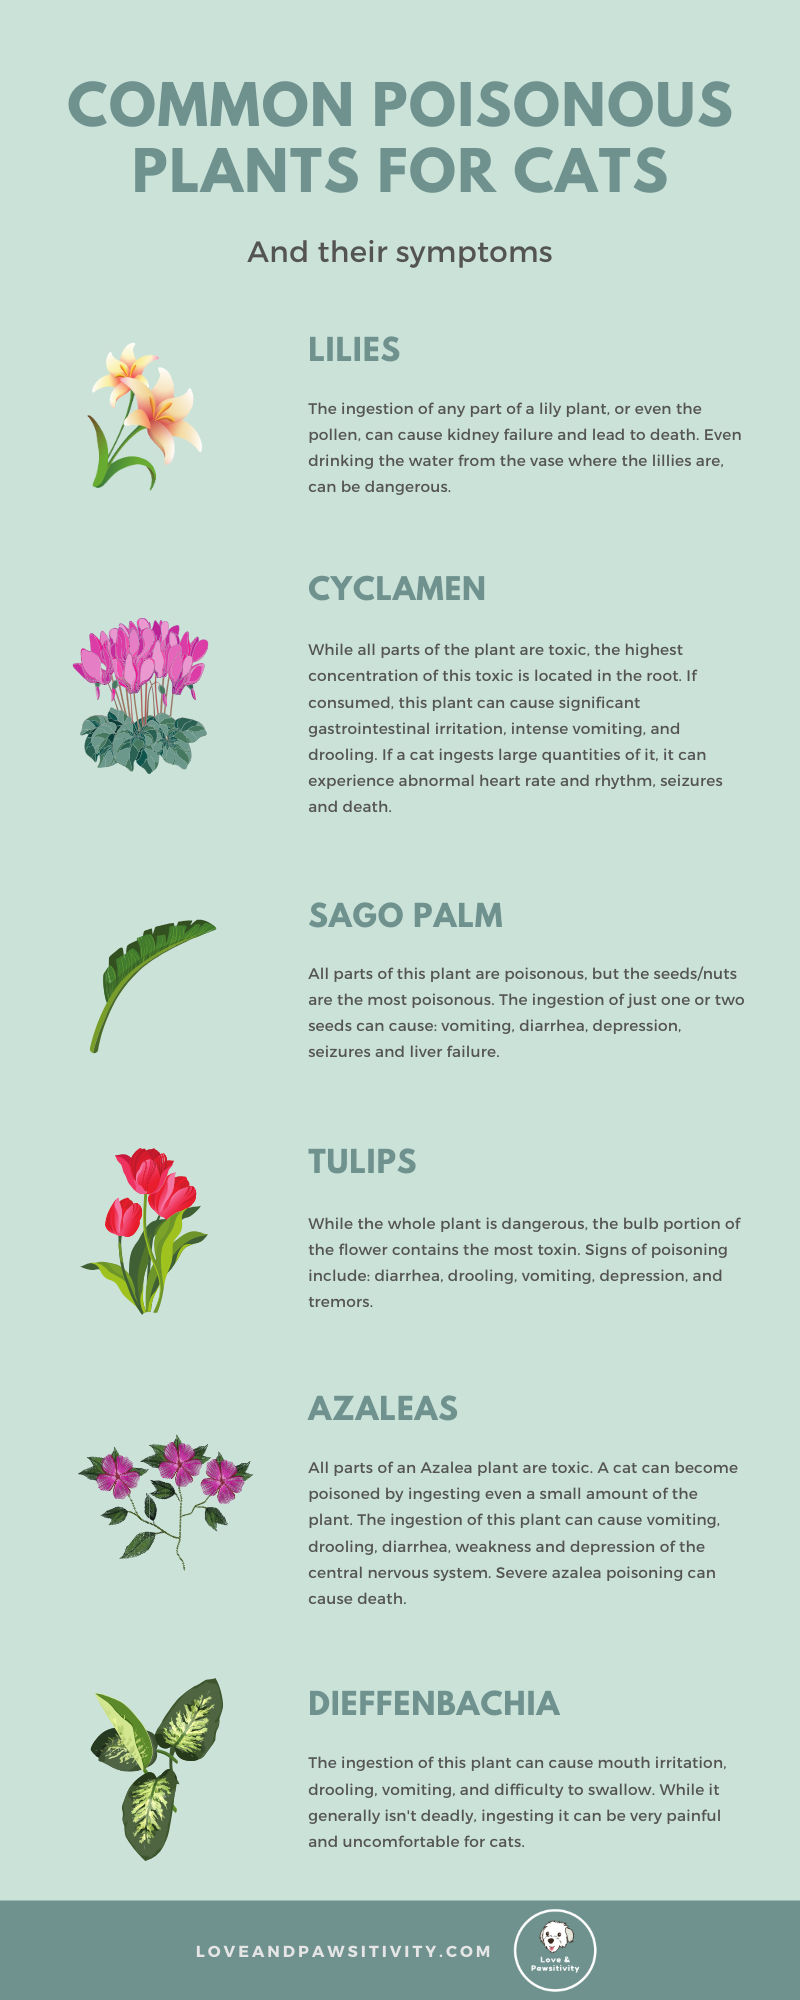 Most Common Poisonous Plants for Cats